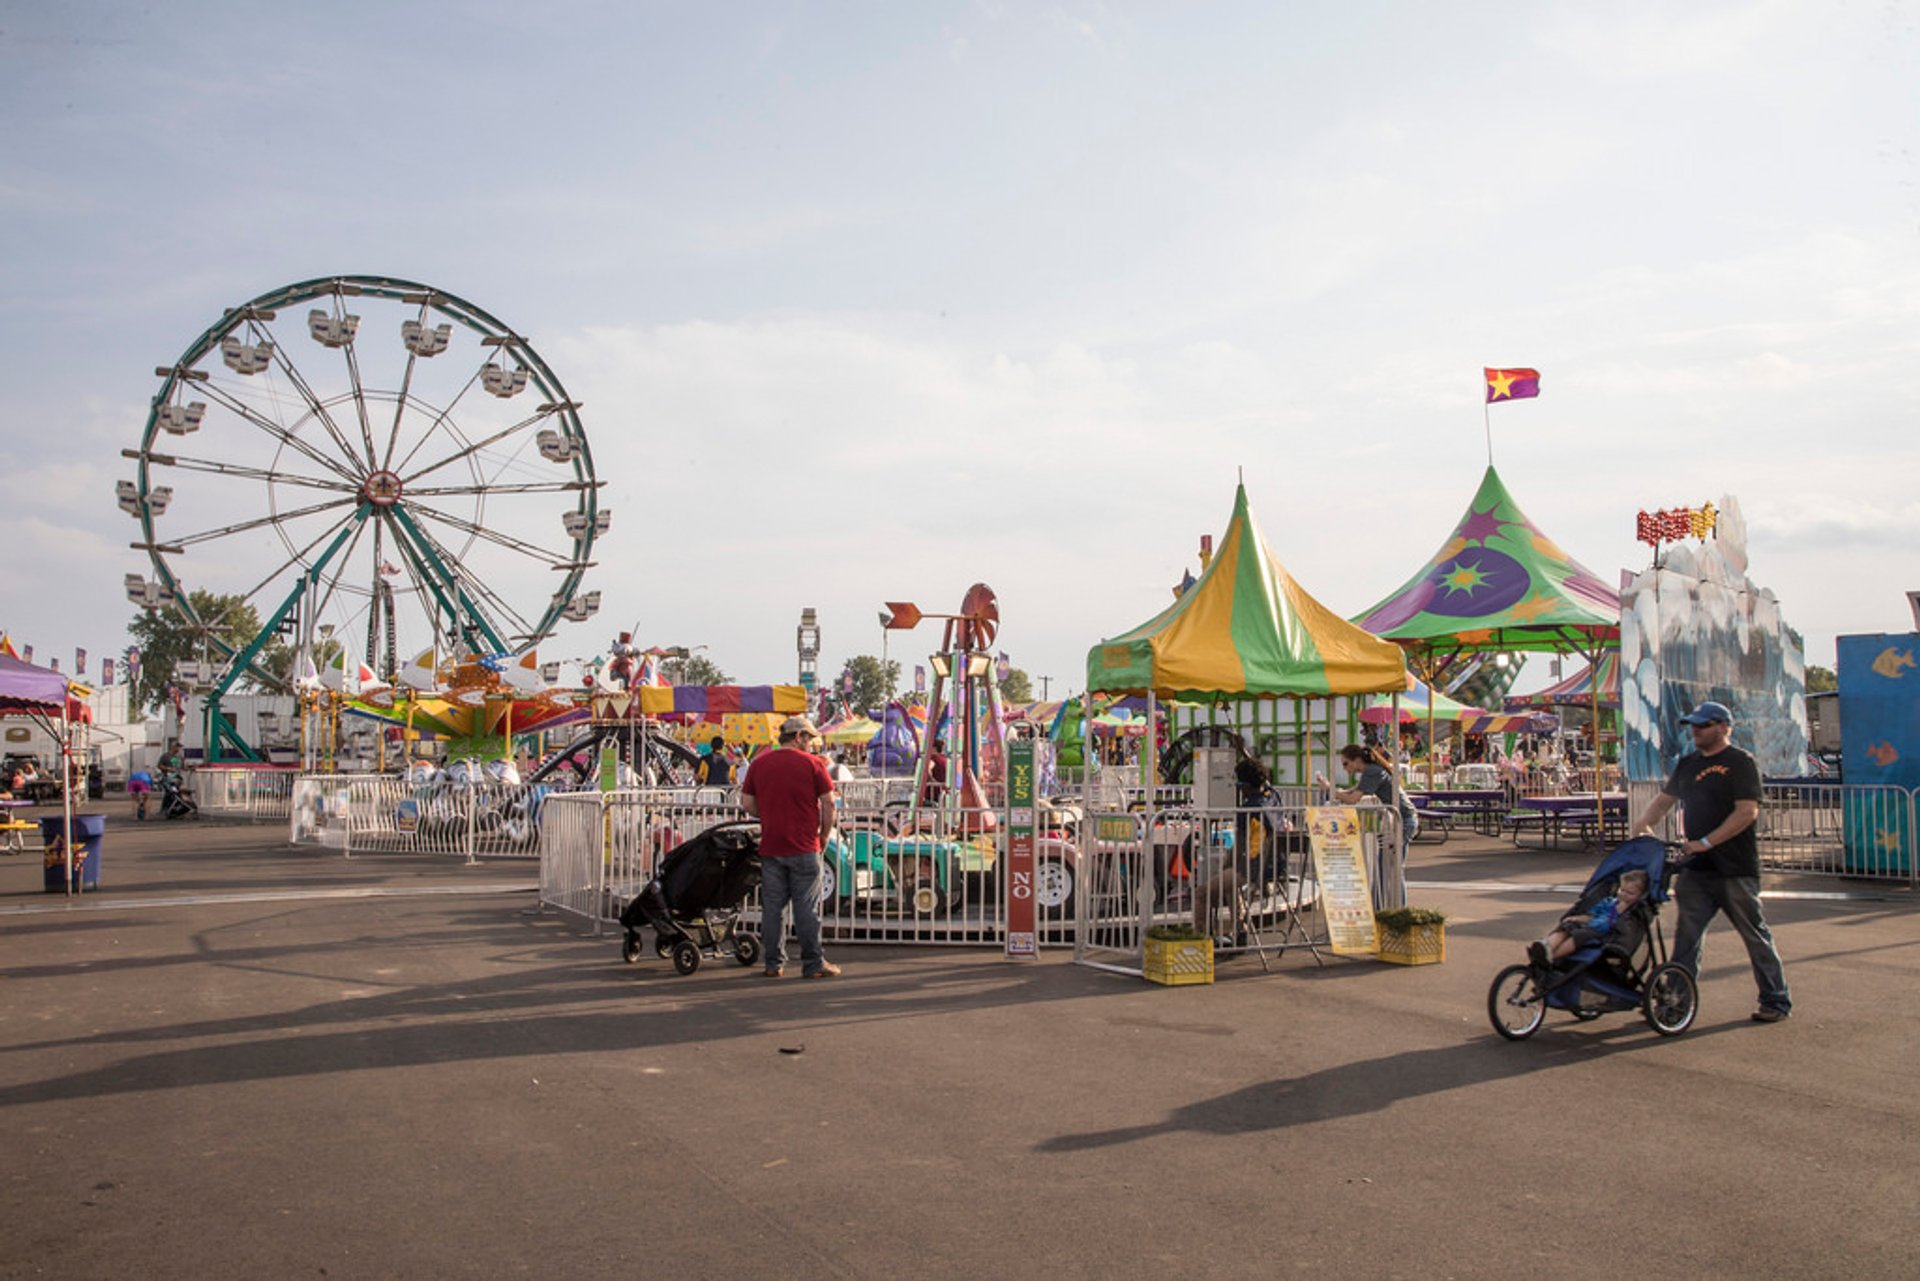 South Dakota State Fair in Midwest - Best Season 2020